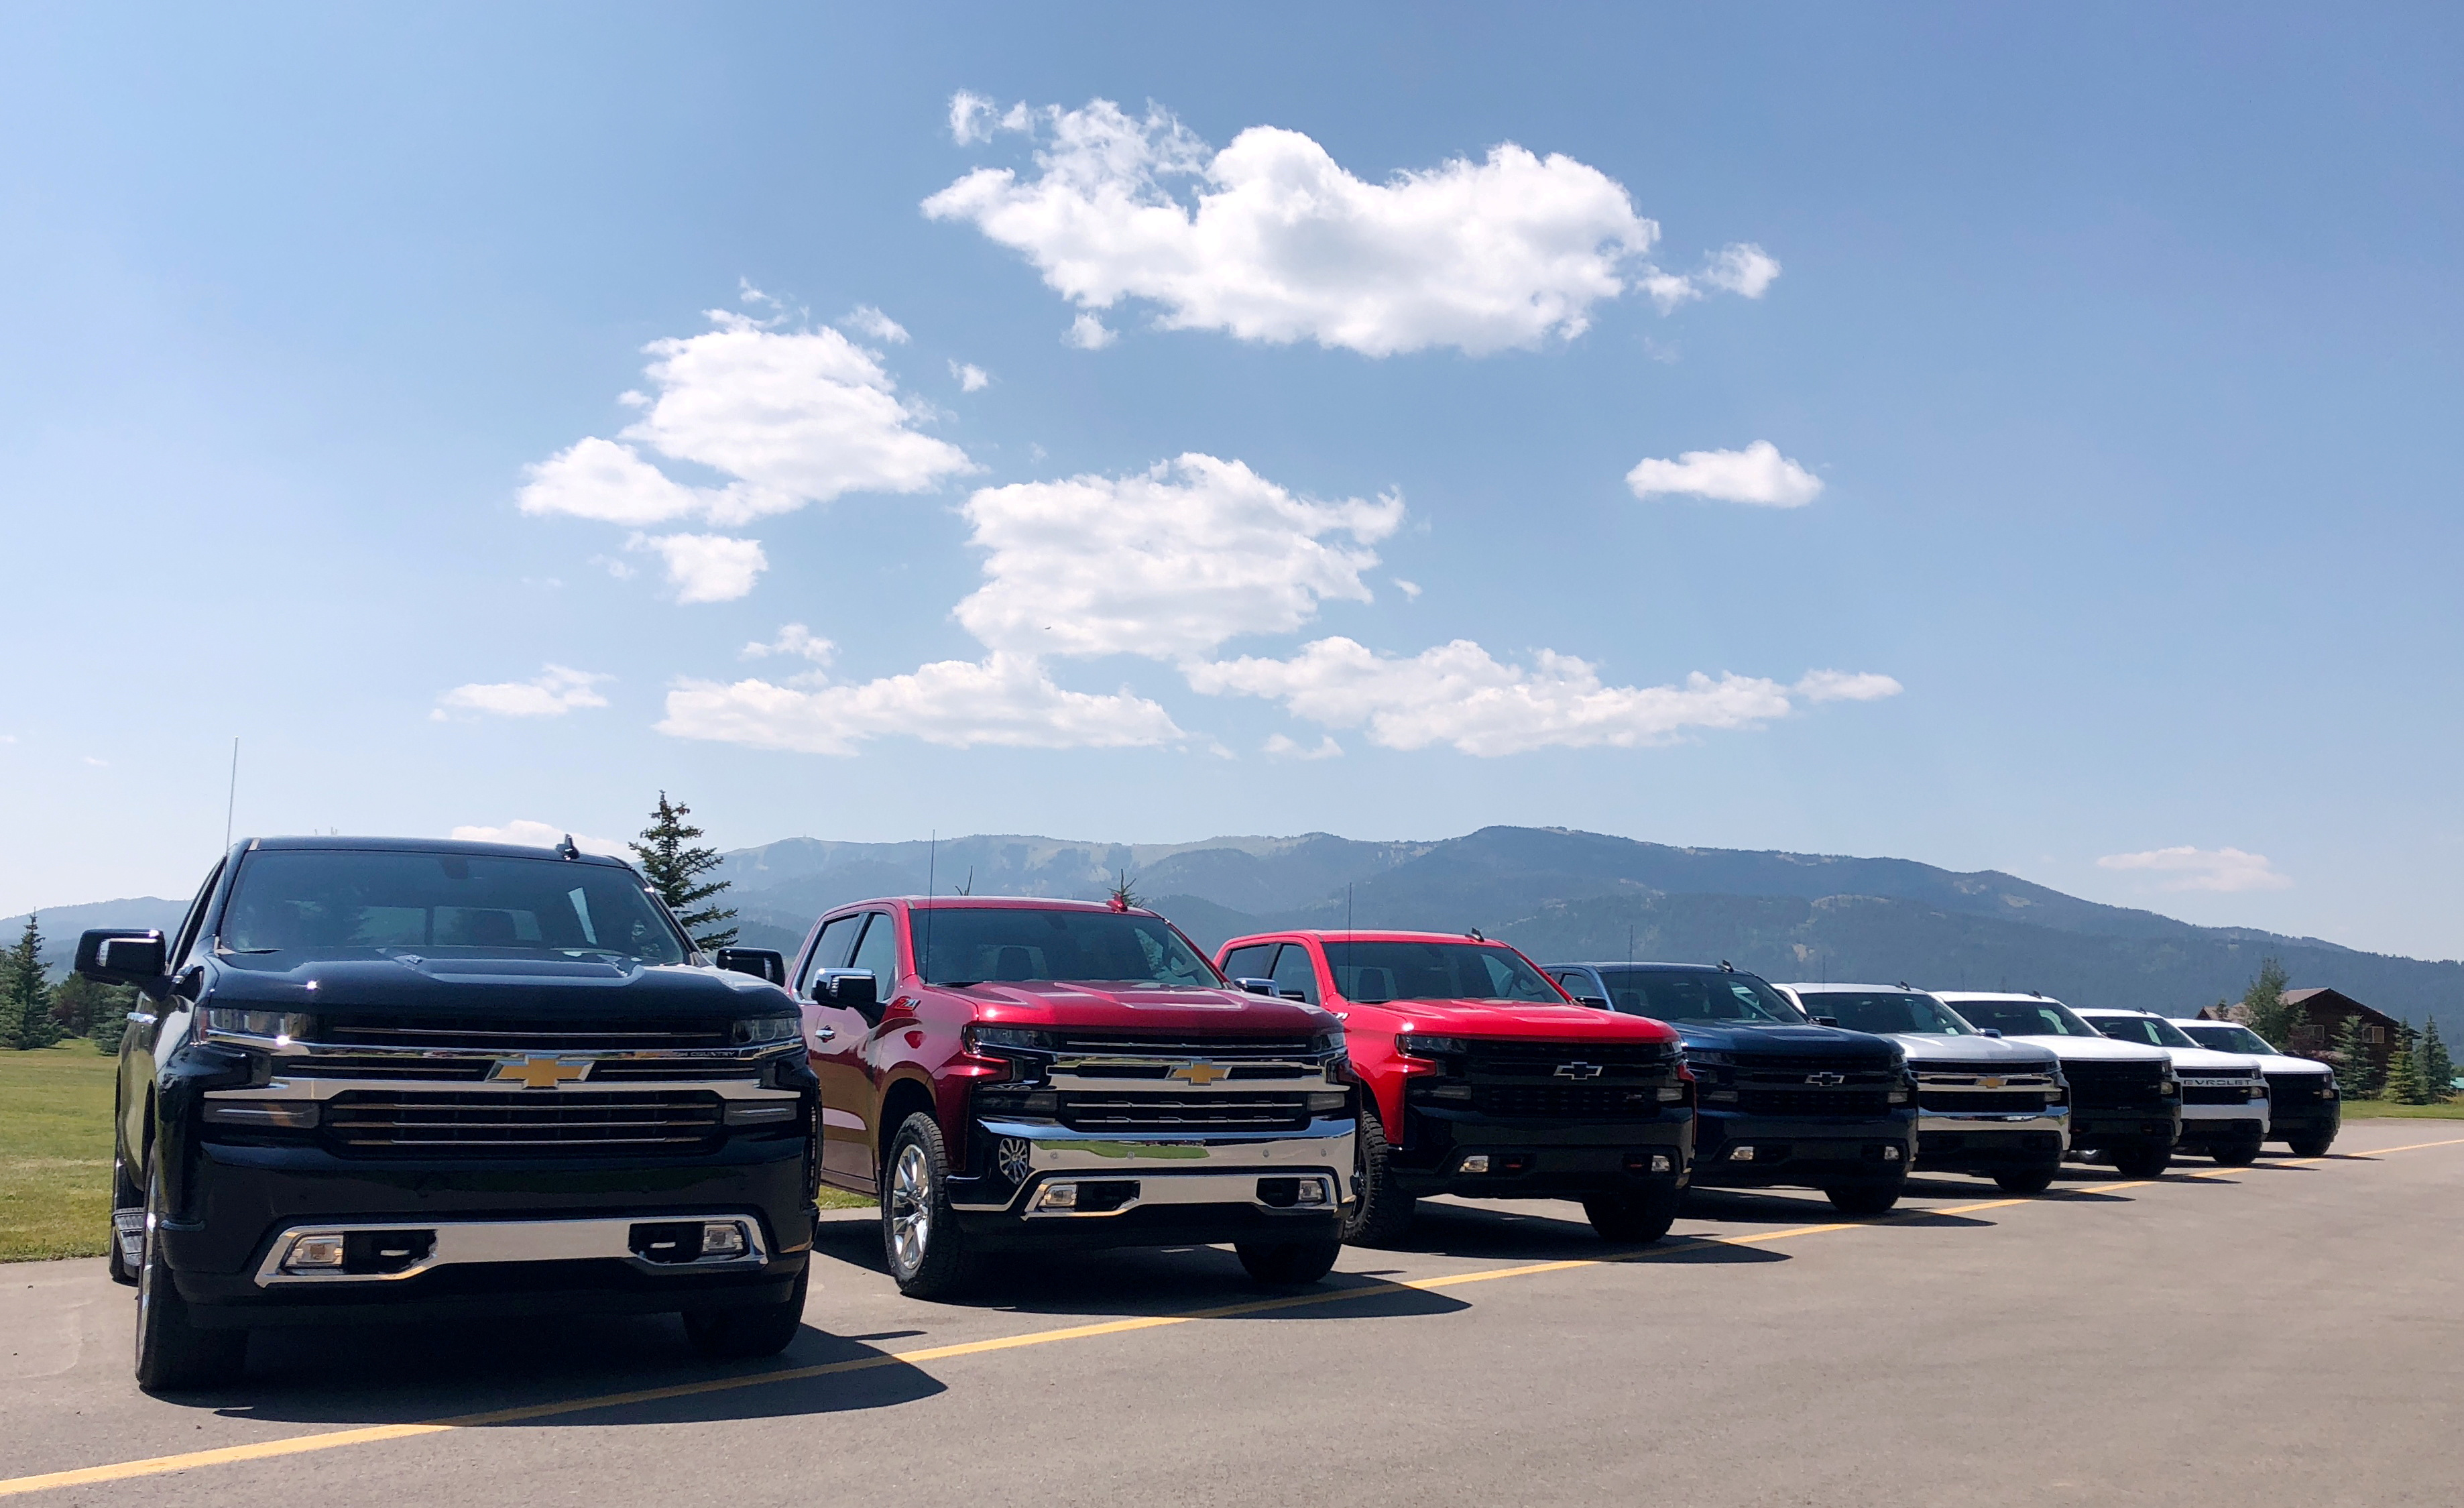 Eight versions of General Motors Co's Chevrolet Silverado pickups are pictured lined up at an event near Alpine, Idaho, U.S. August 7, 2018.  REUTERS/Joseph White/File Photo